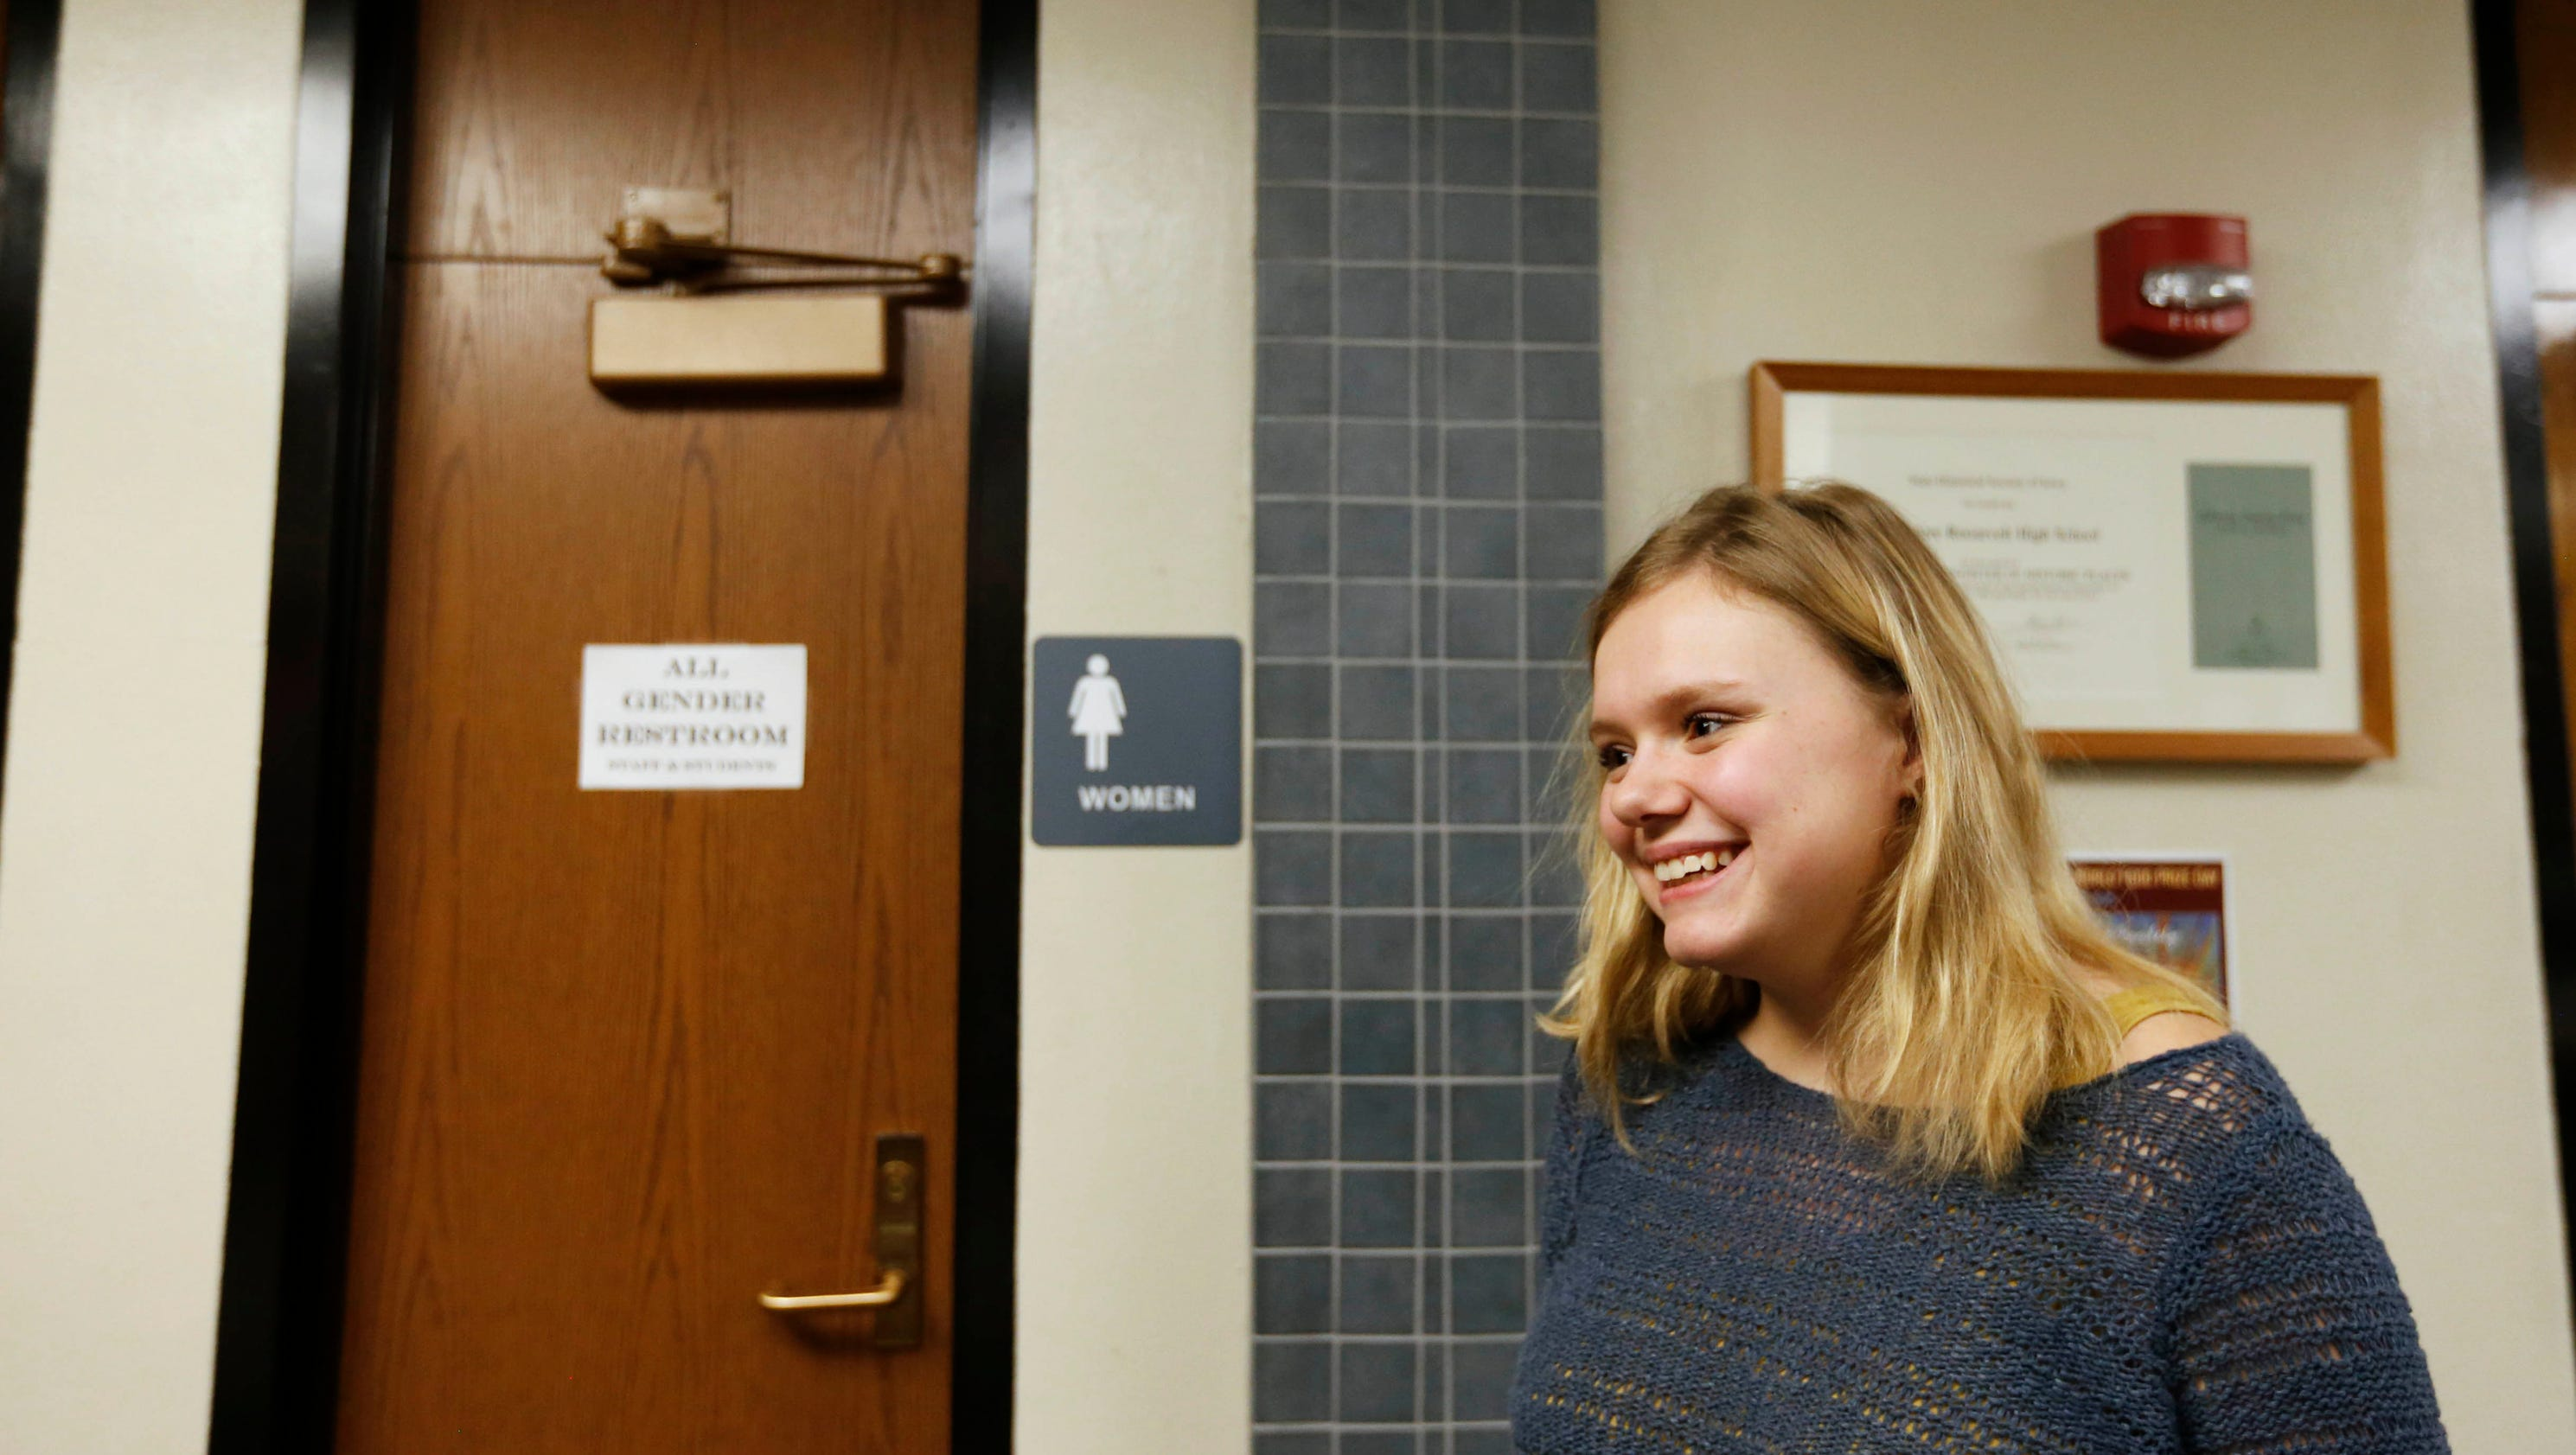 39 All Gender 39 Restrooms In Iowa Aim To Make Students Feel Safe